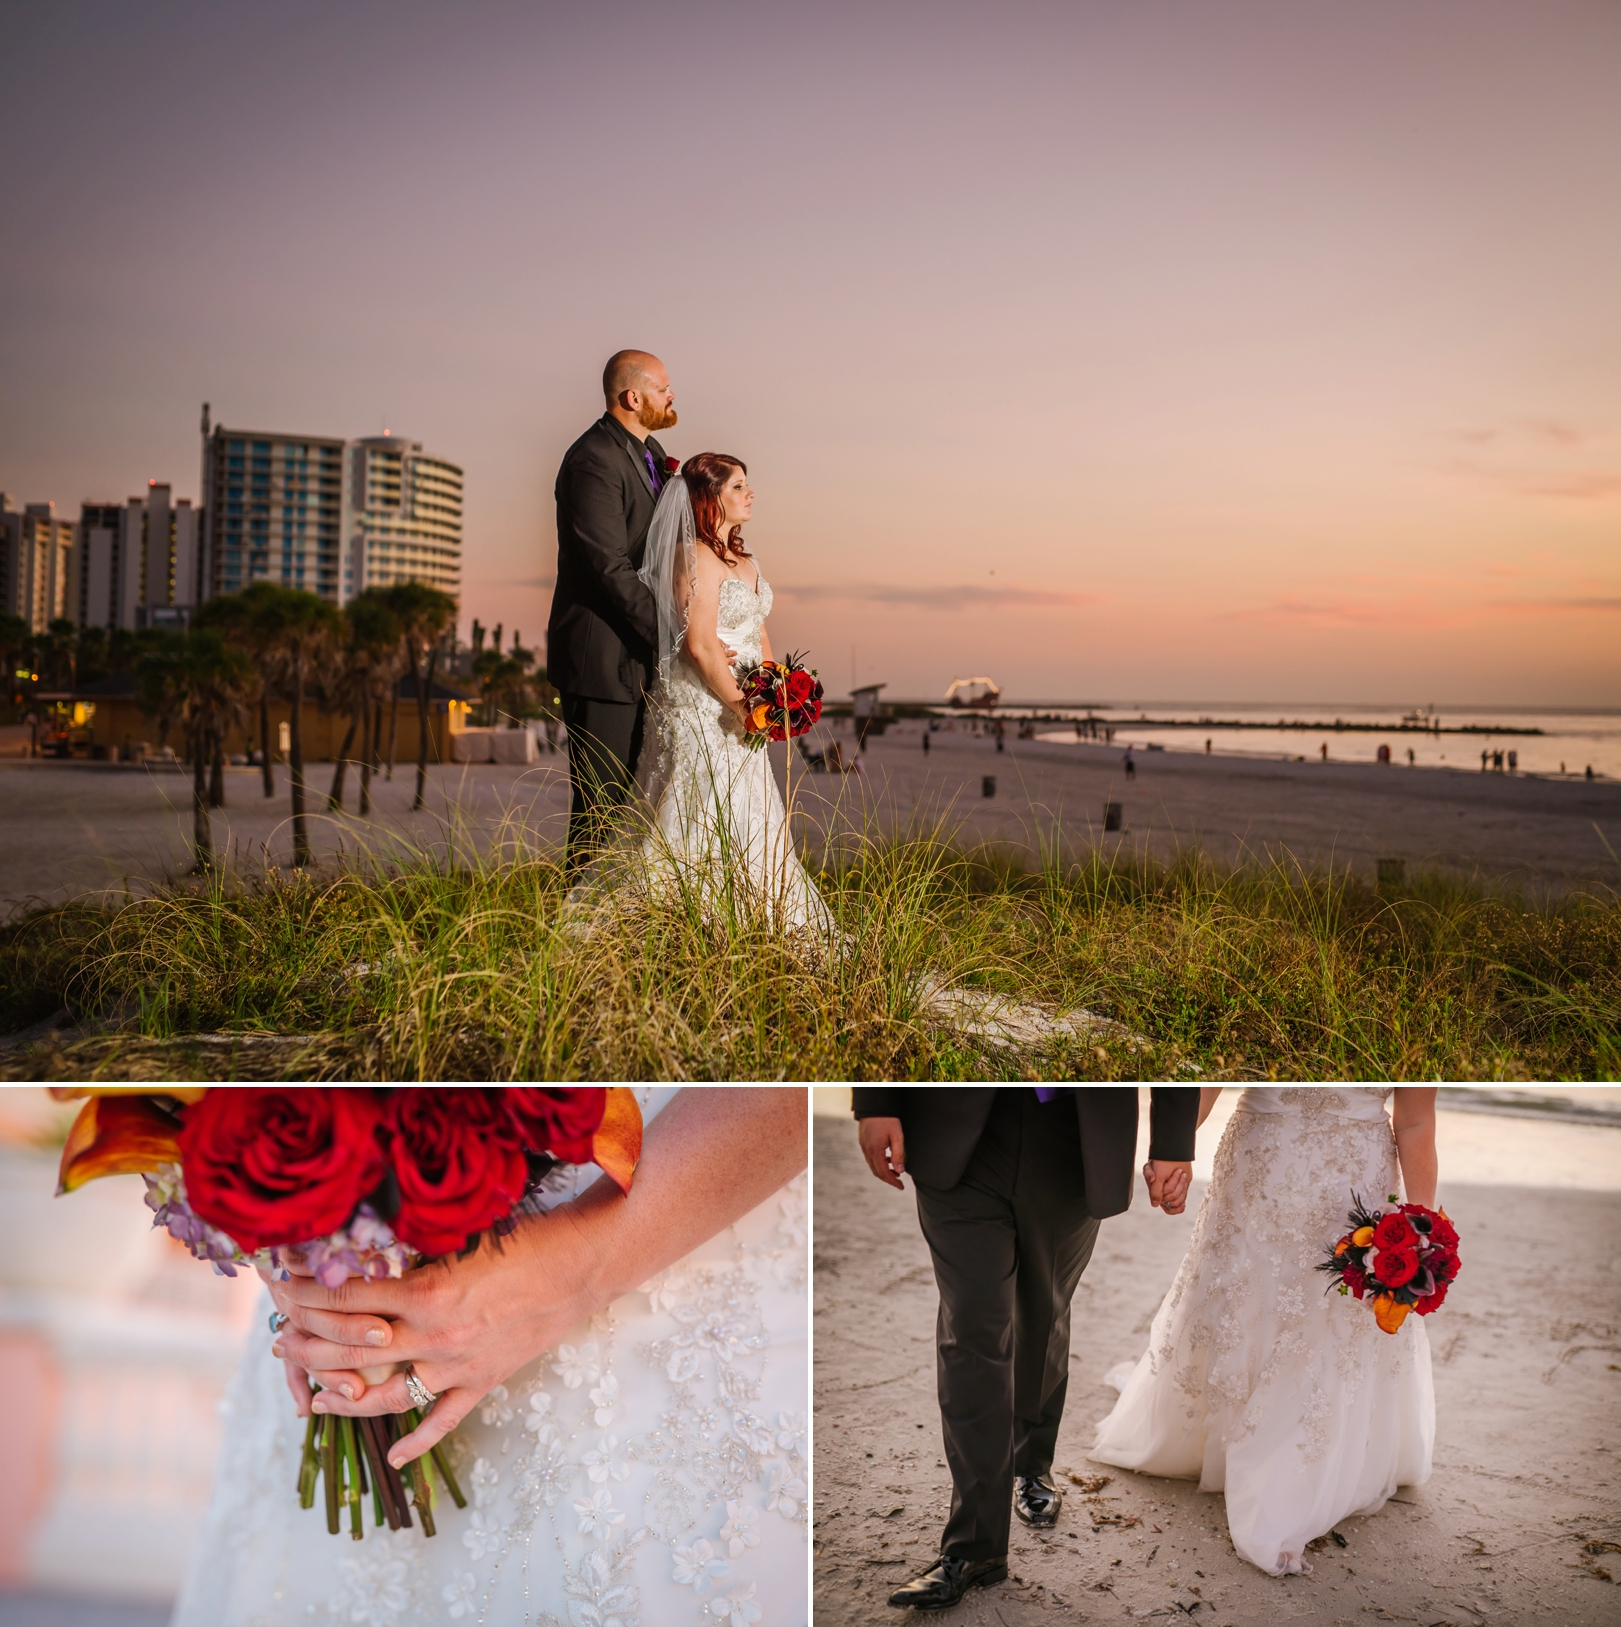 clearwater-beach-hyatt-masquerade-ballroom-themed-wedding-photograpy_0018.jpg